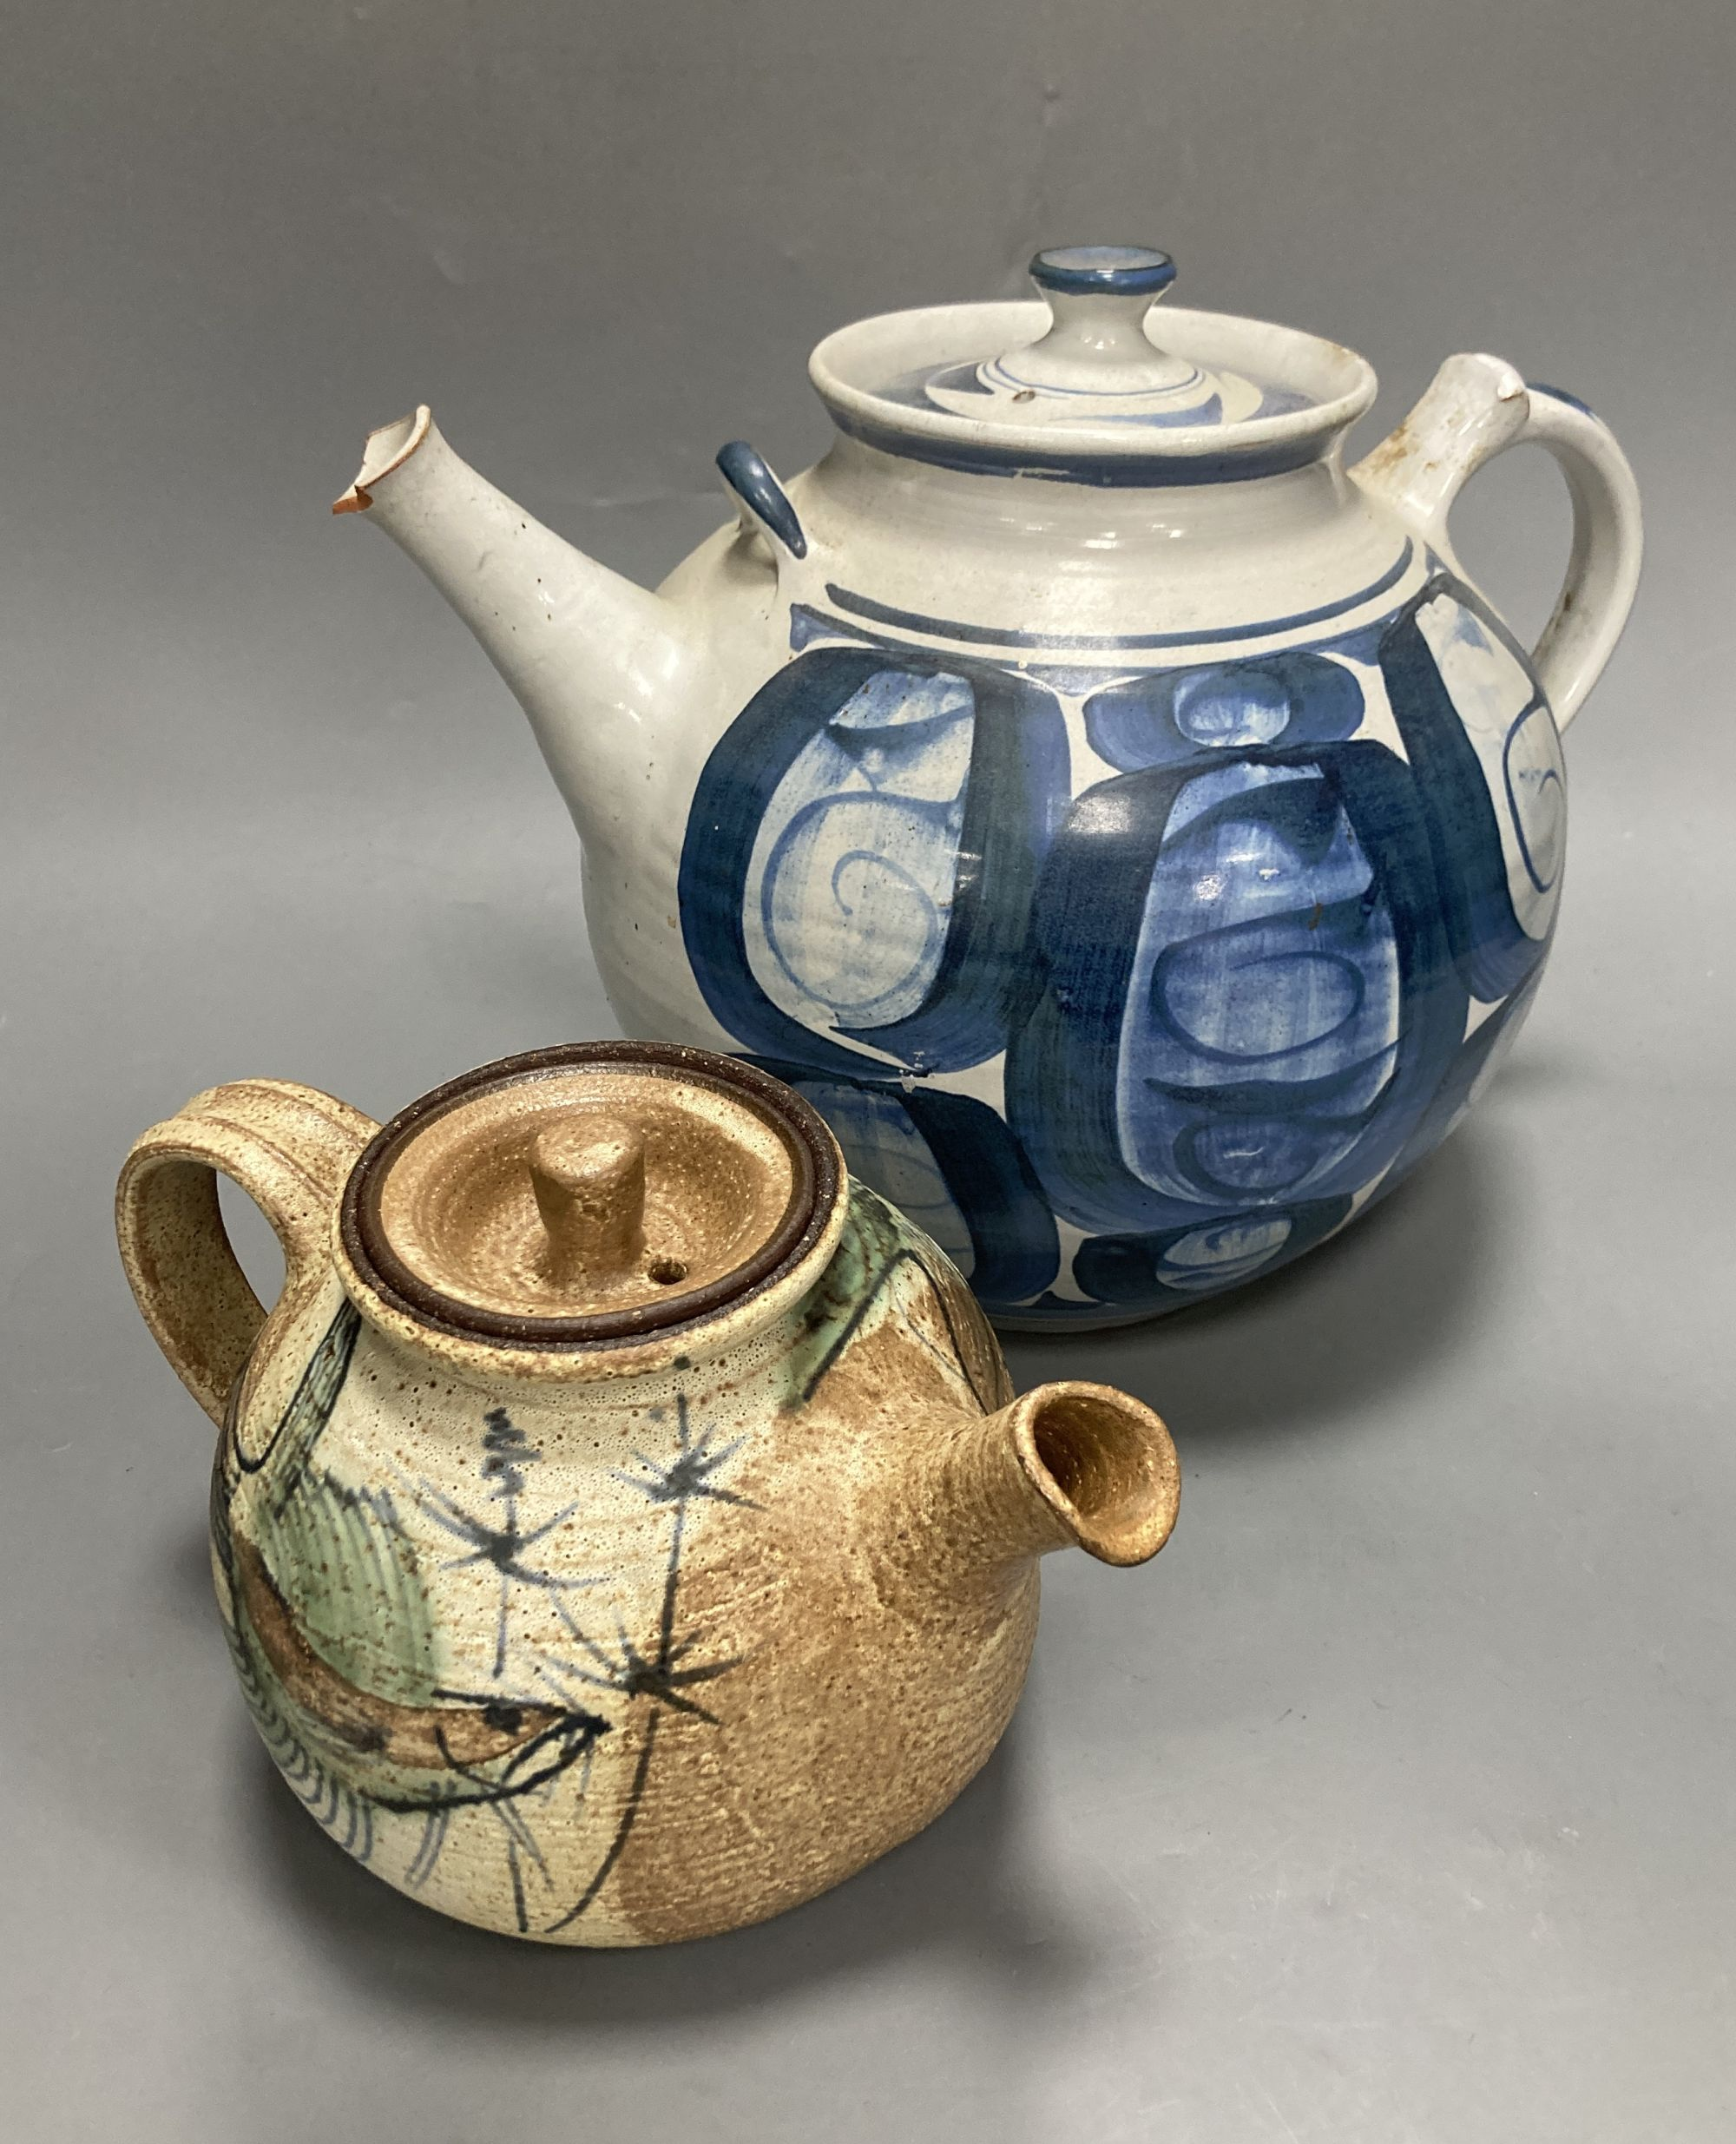 Two Studio pottery teapots, largest 25cm